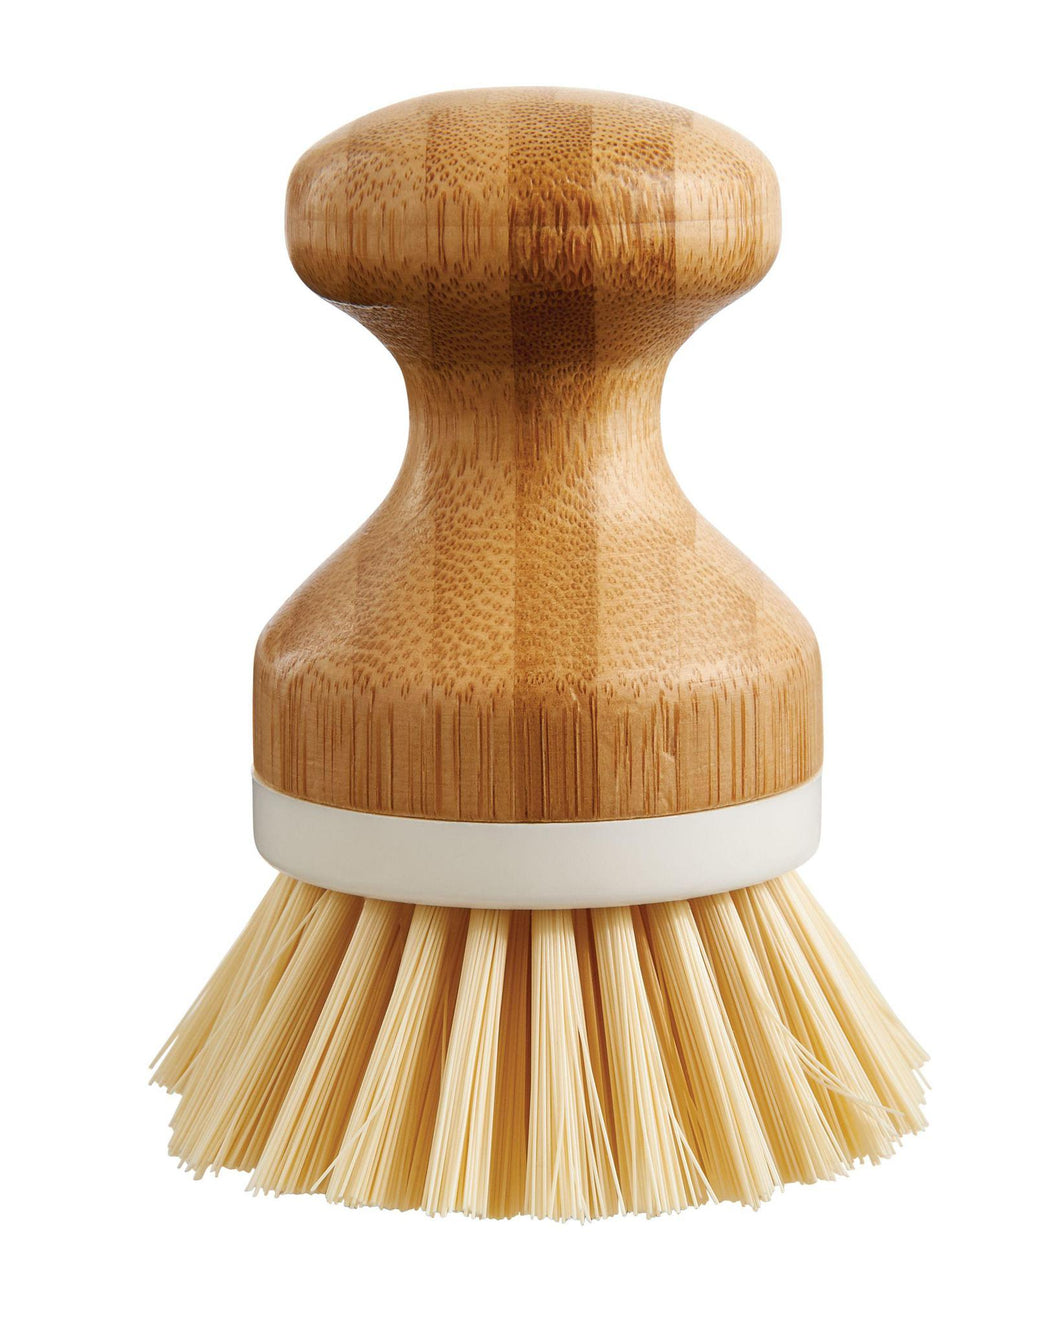 HIC Bamboo Vegetable Scrubber Dishwashing Brush